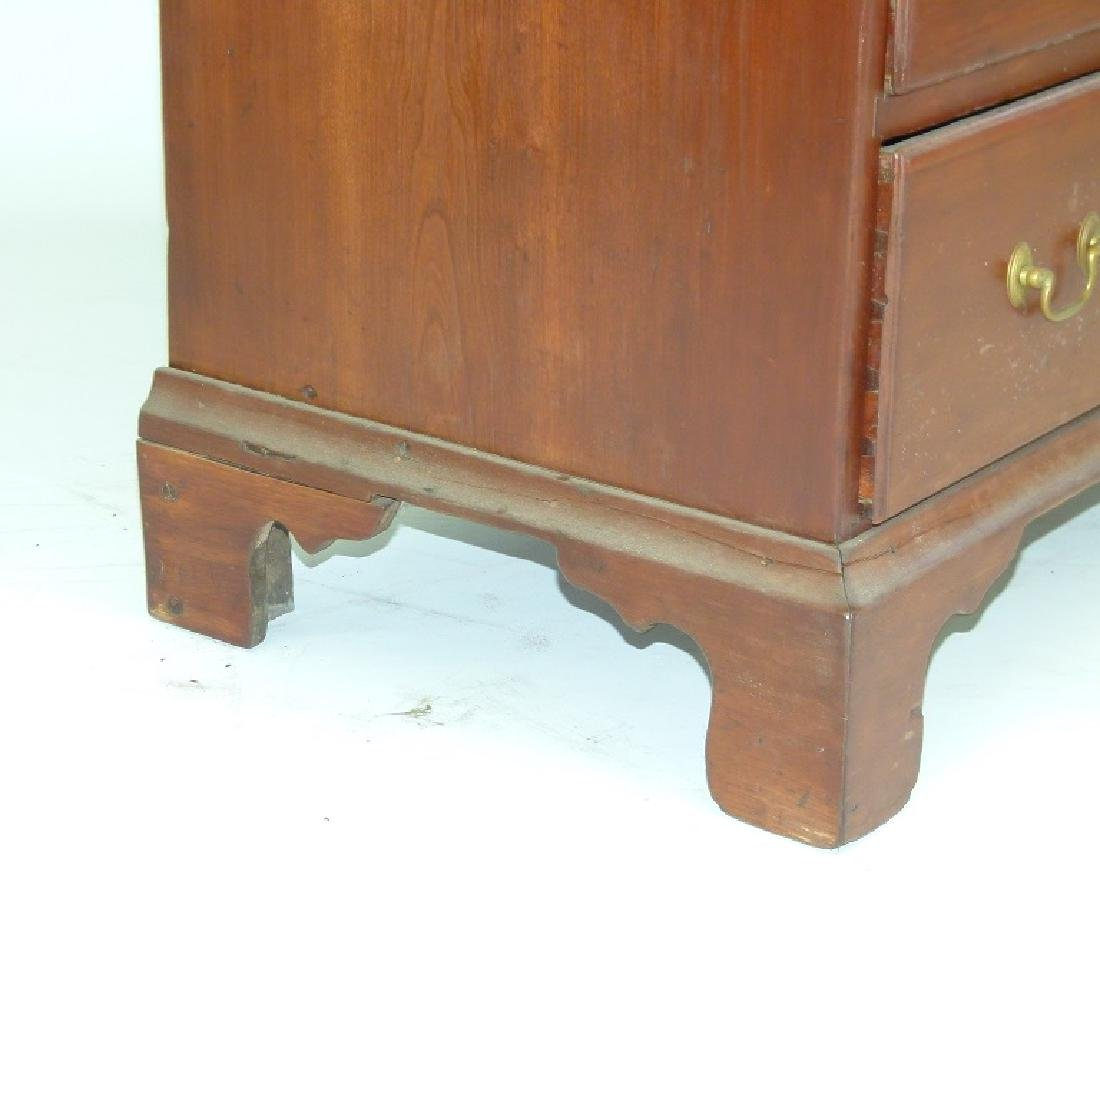 CHIPPENDALE CHERRY 2/5 CHEST OF DRAWERS, 18TH C. - 7